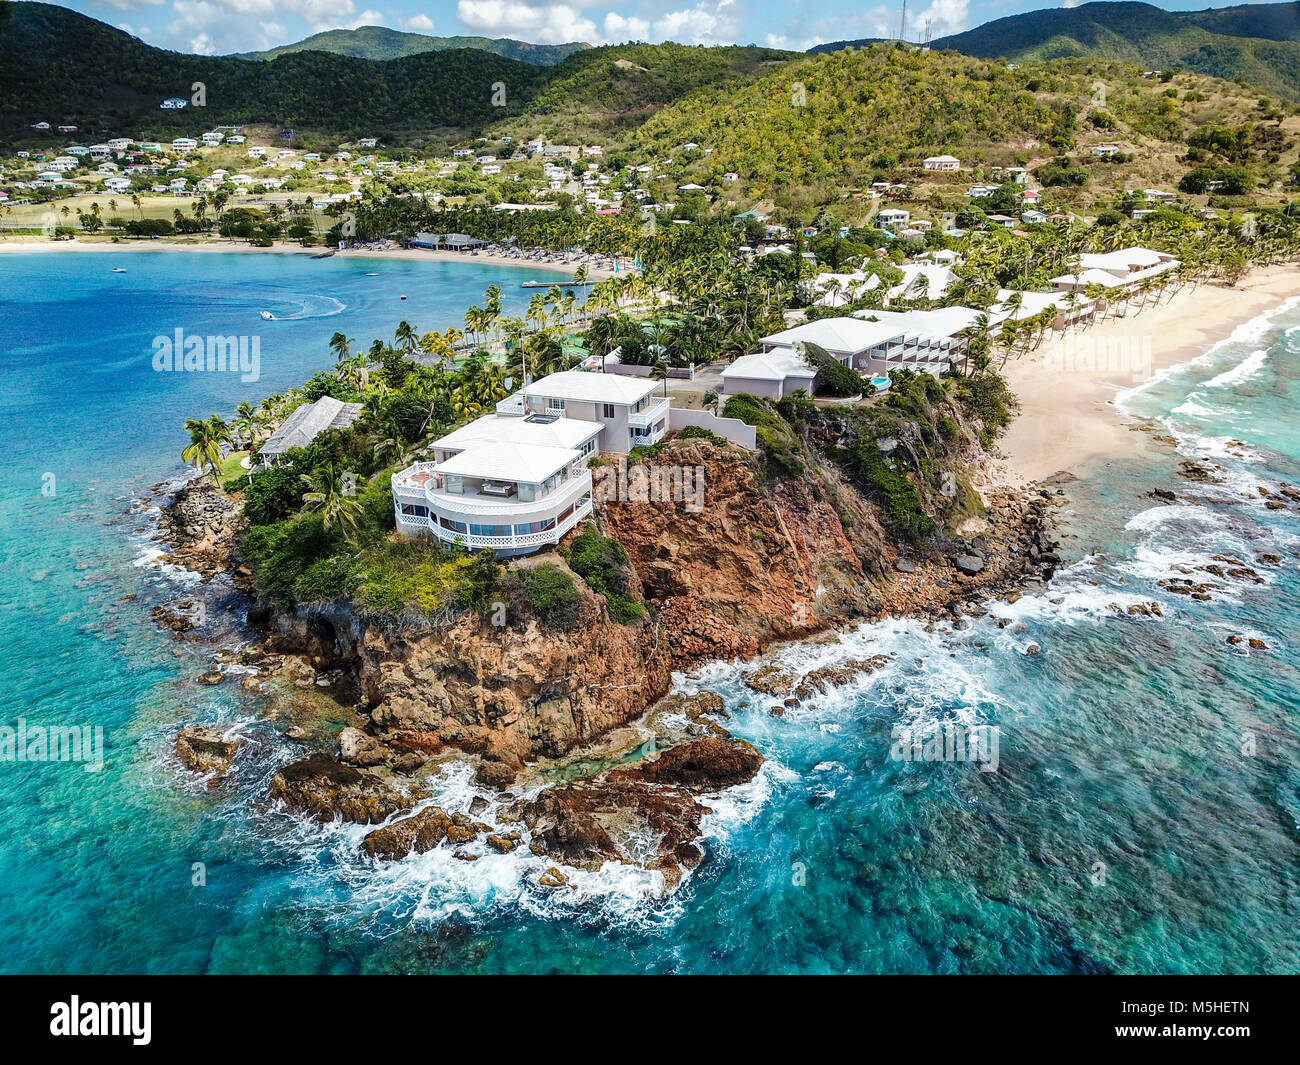 Curtain Bluff Resort, Antigua - Stock Image